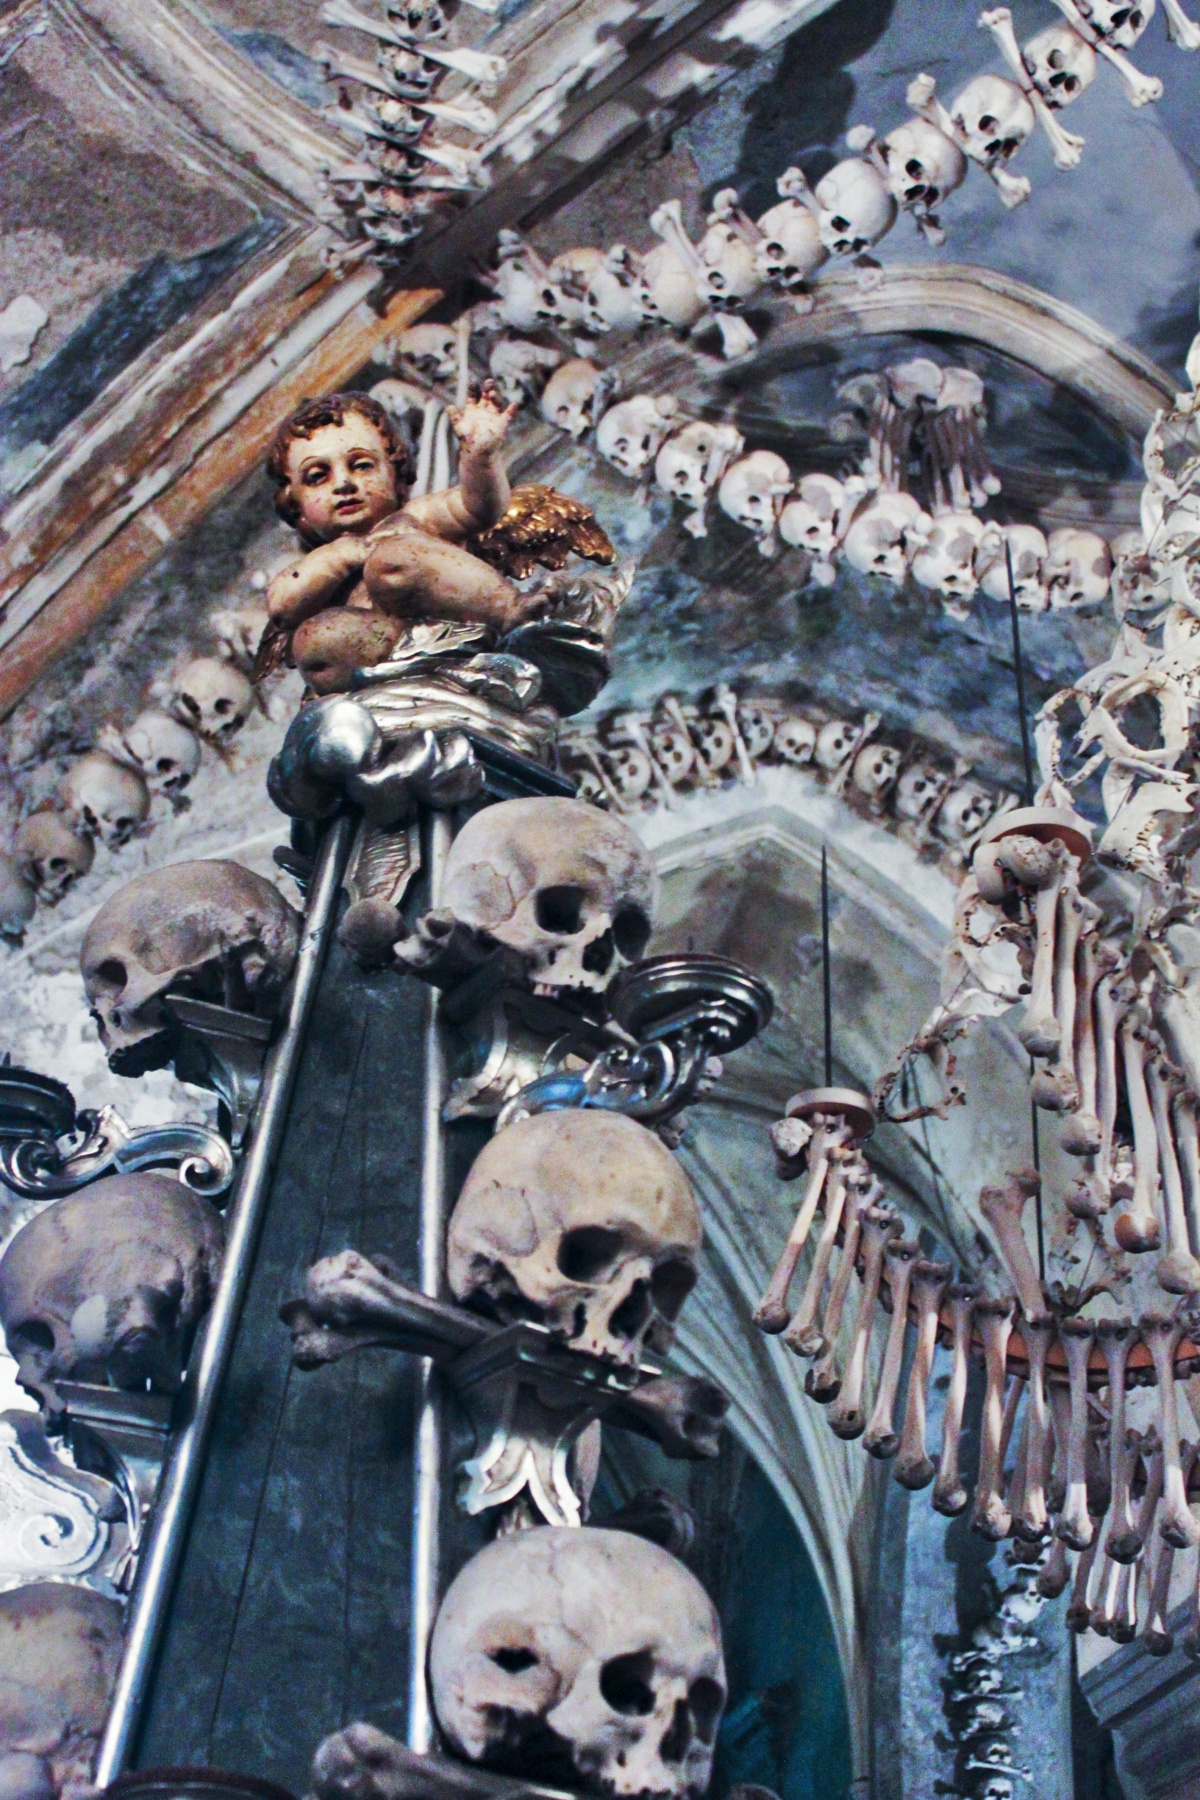 The Cherub Atop the Spire of Skulls